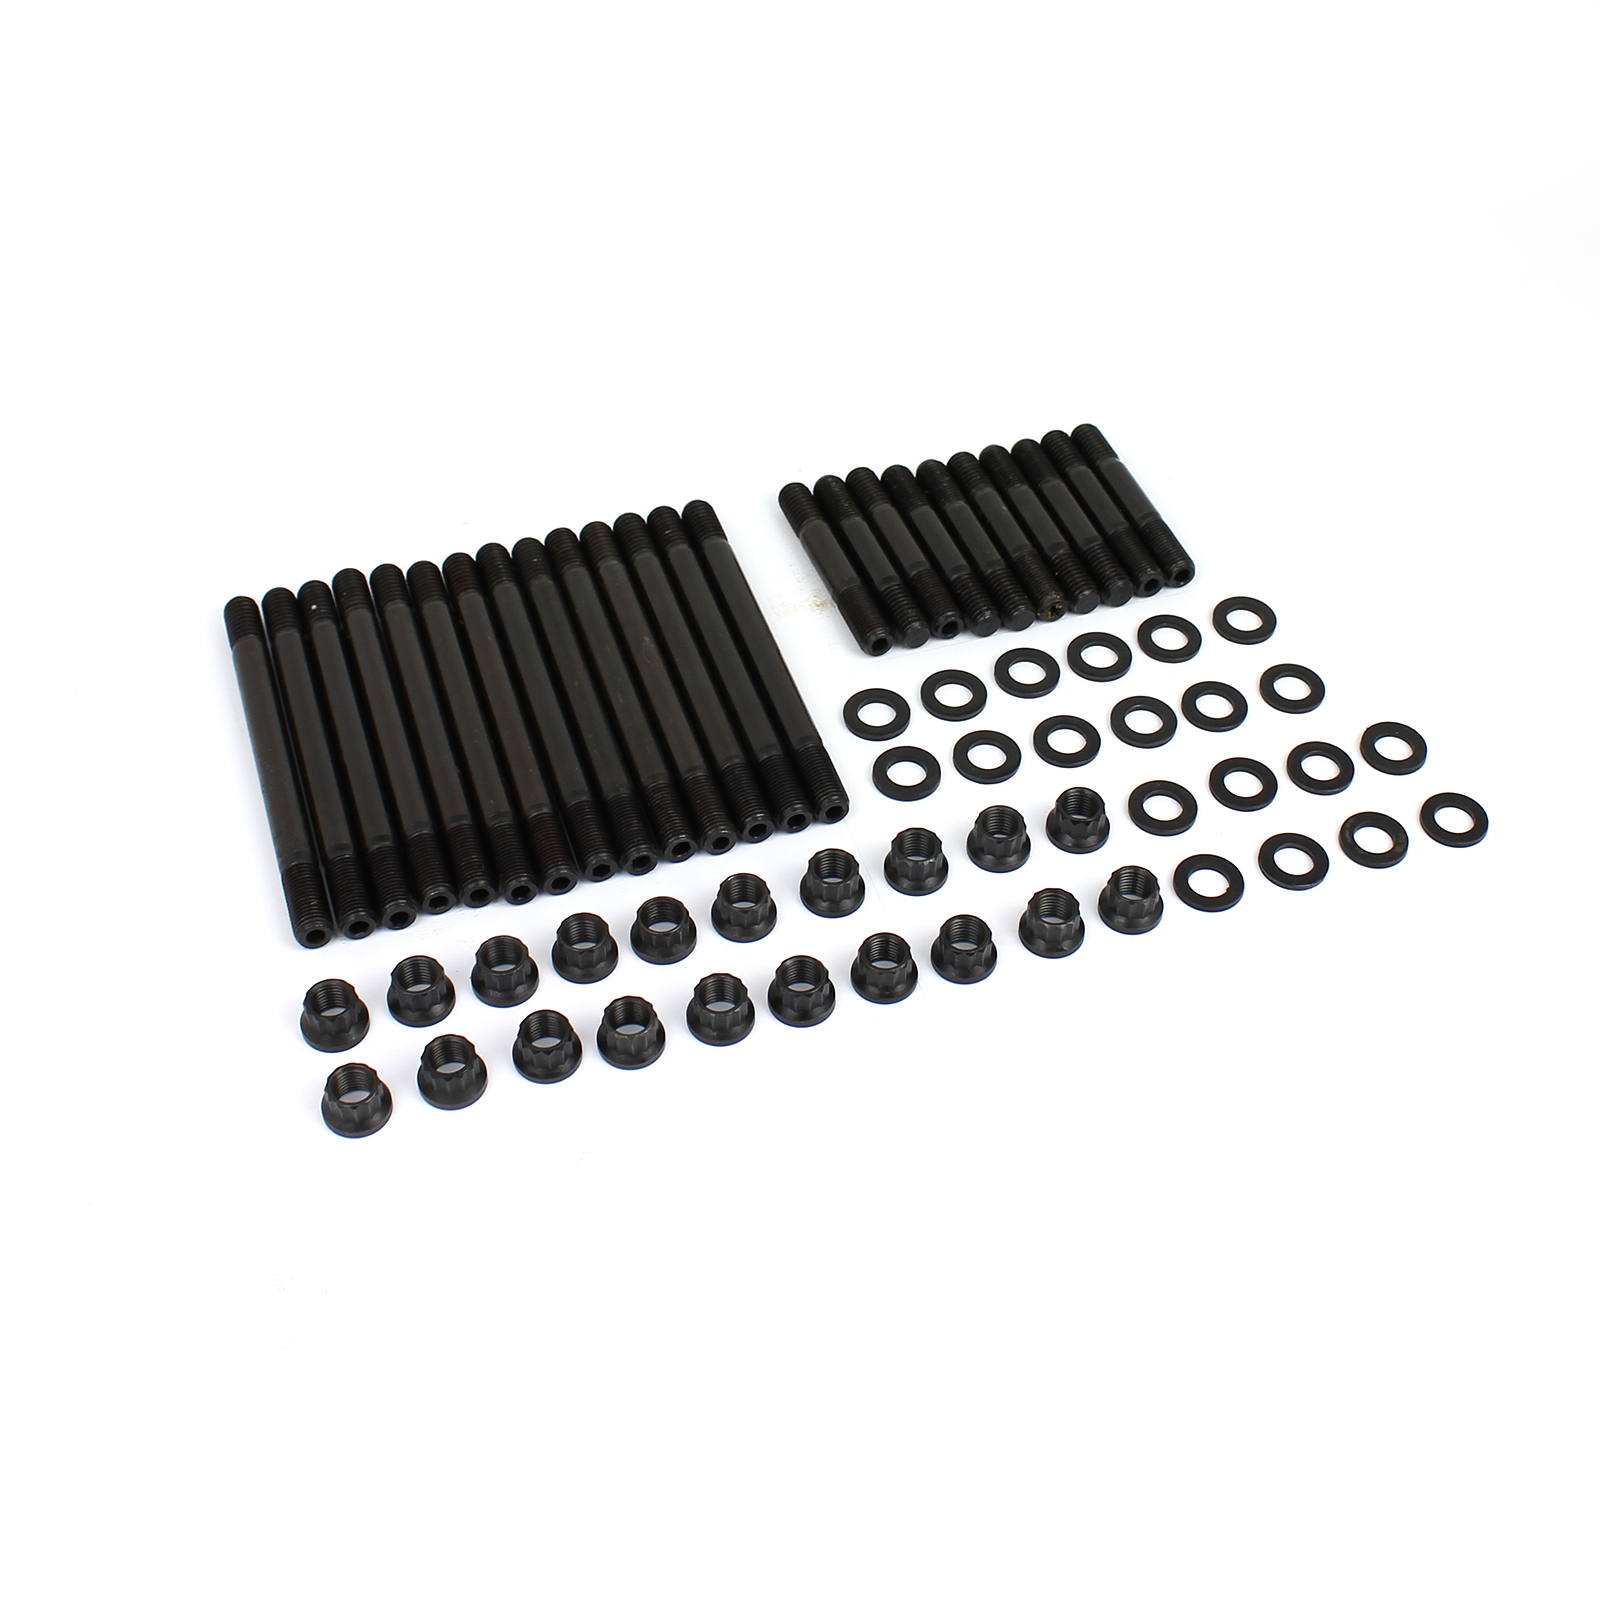 Holden-253-304-308-12-Point-Head-Stud-Kit